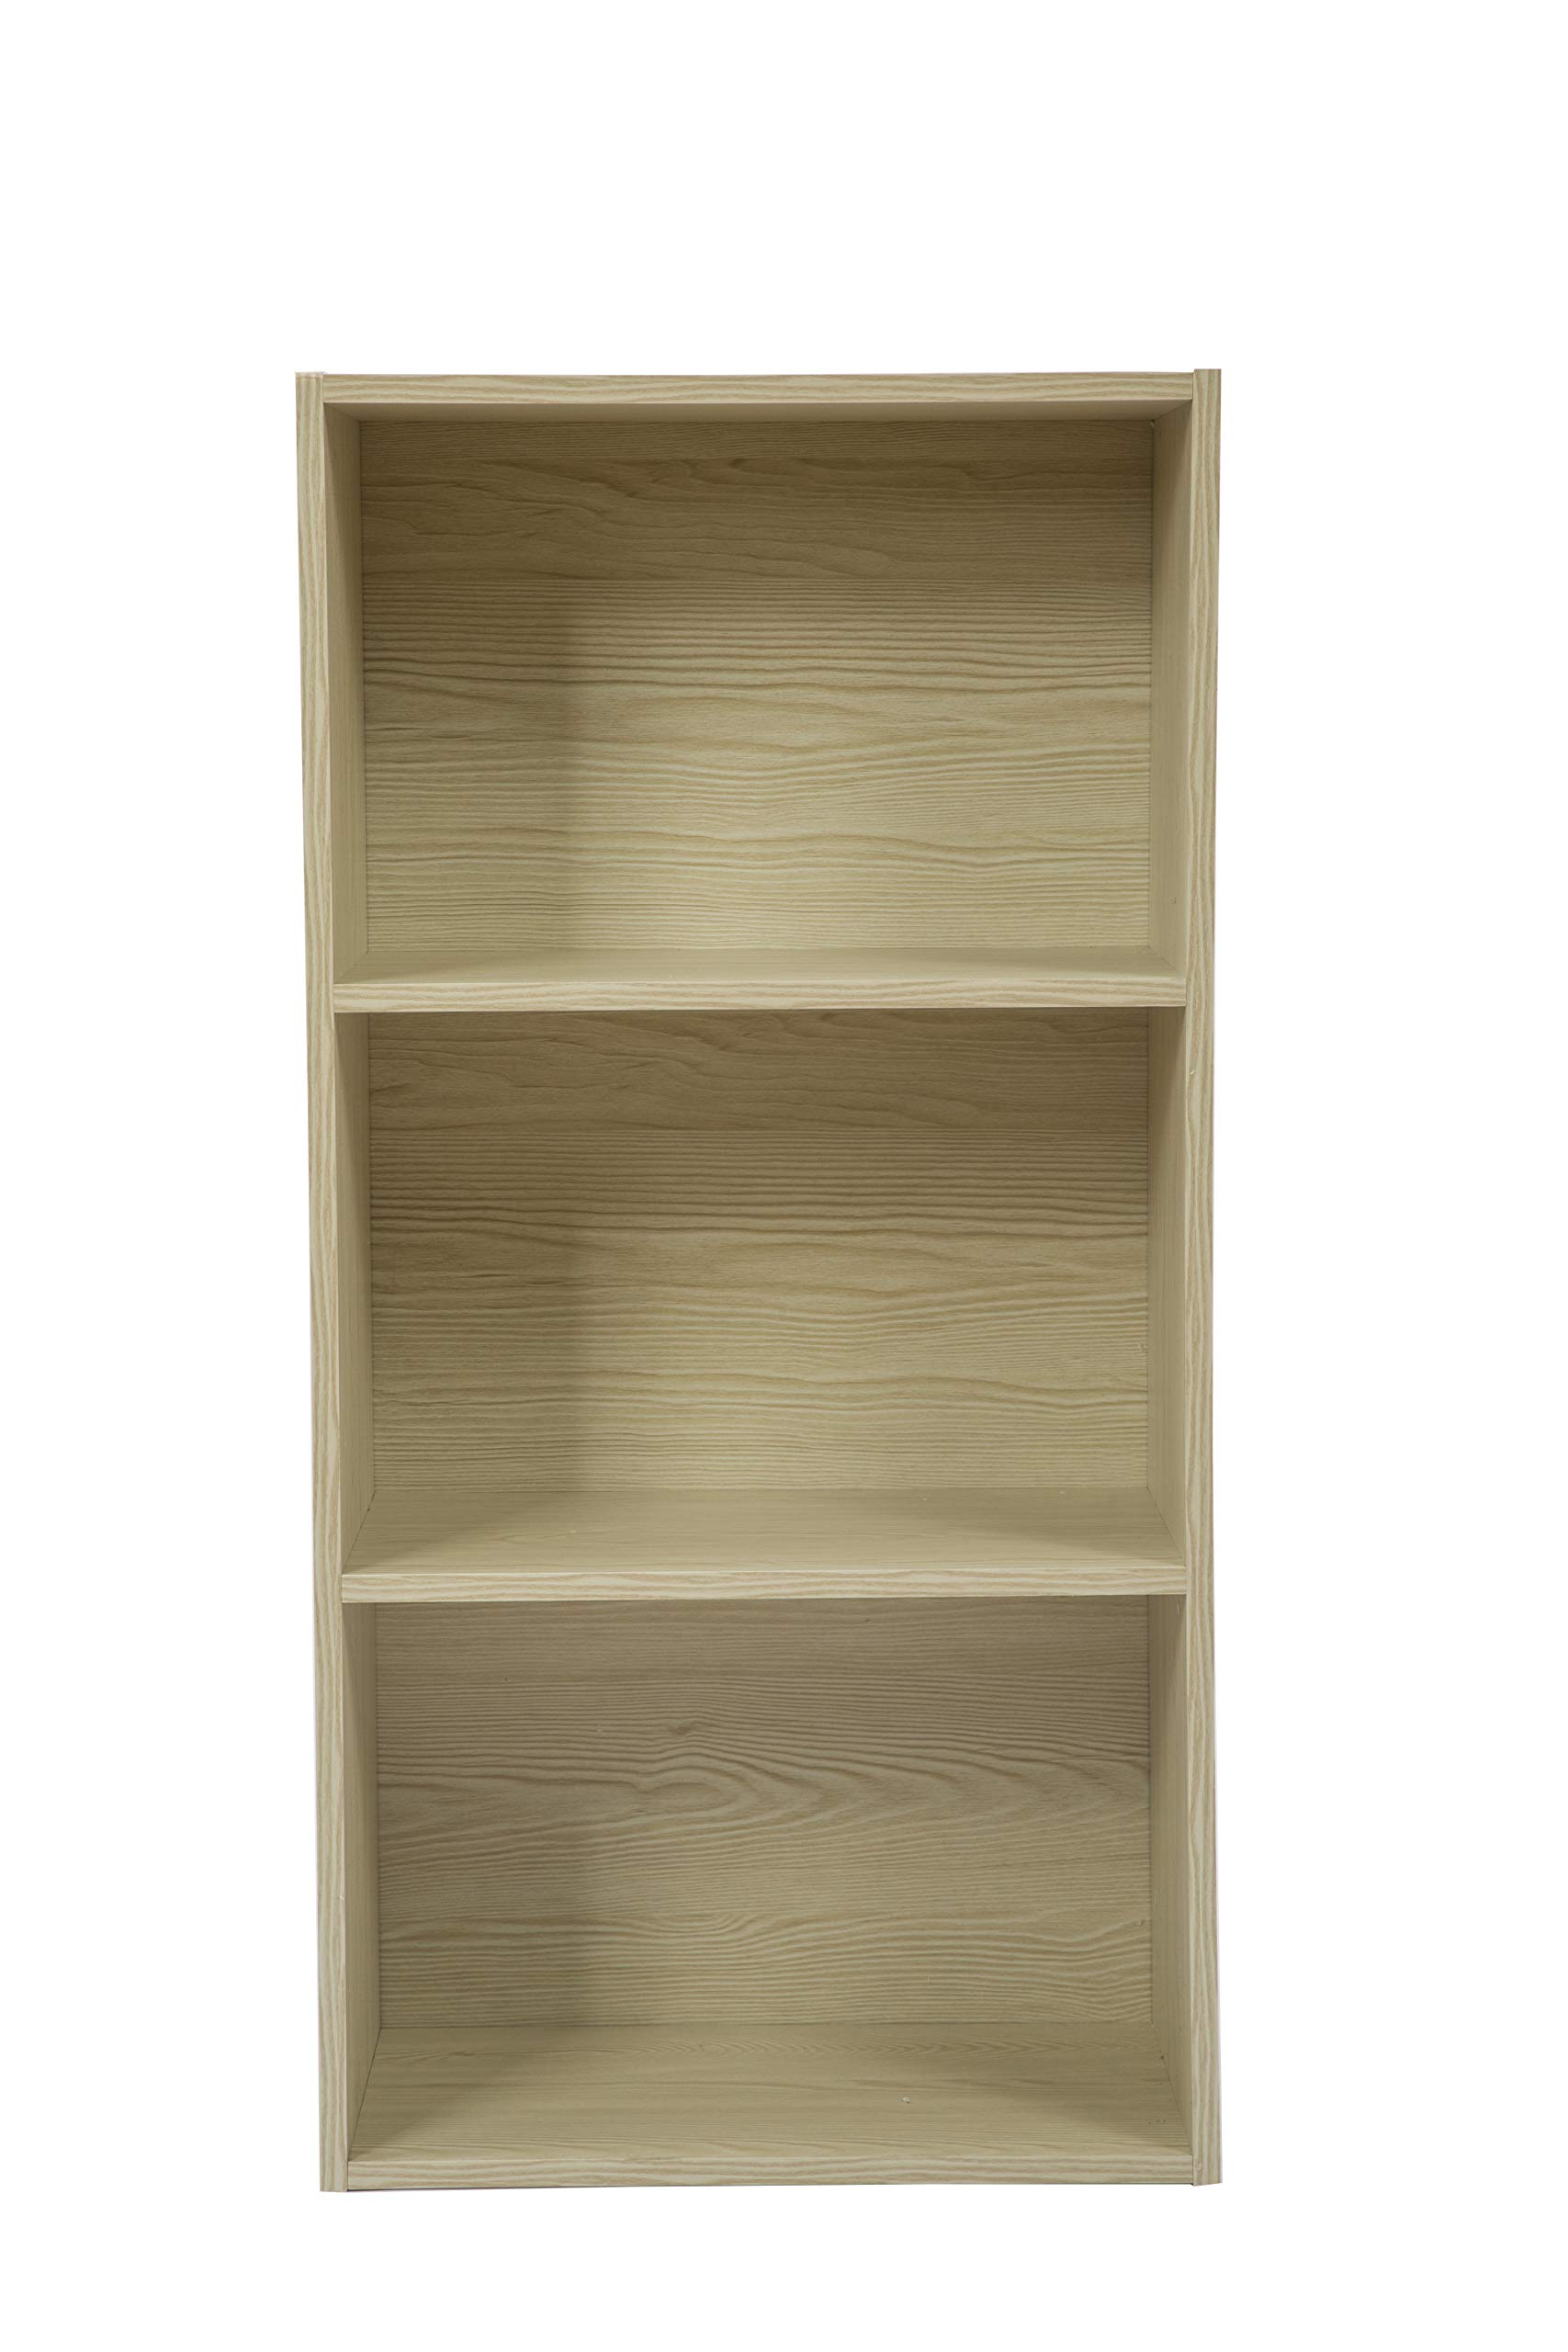 JEROAL 3-Shelf Wooden Bookshelf, 3 Cube Storage Organizer, Display Bookshelf Storage Organizer for Books, Pictures, Decorations, White Oak by JEROAL (Image #8)